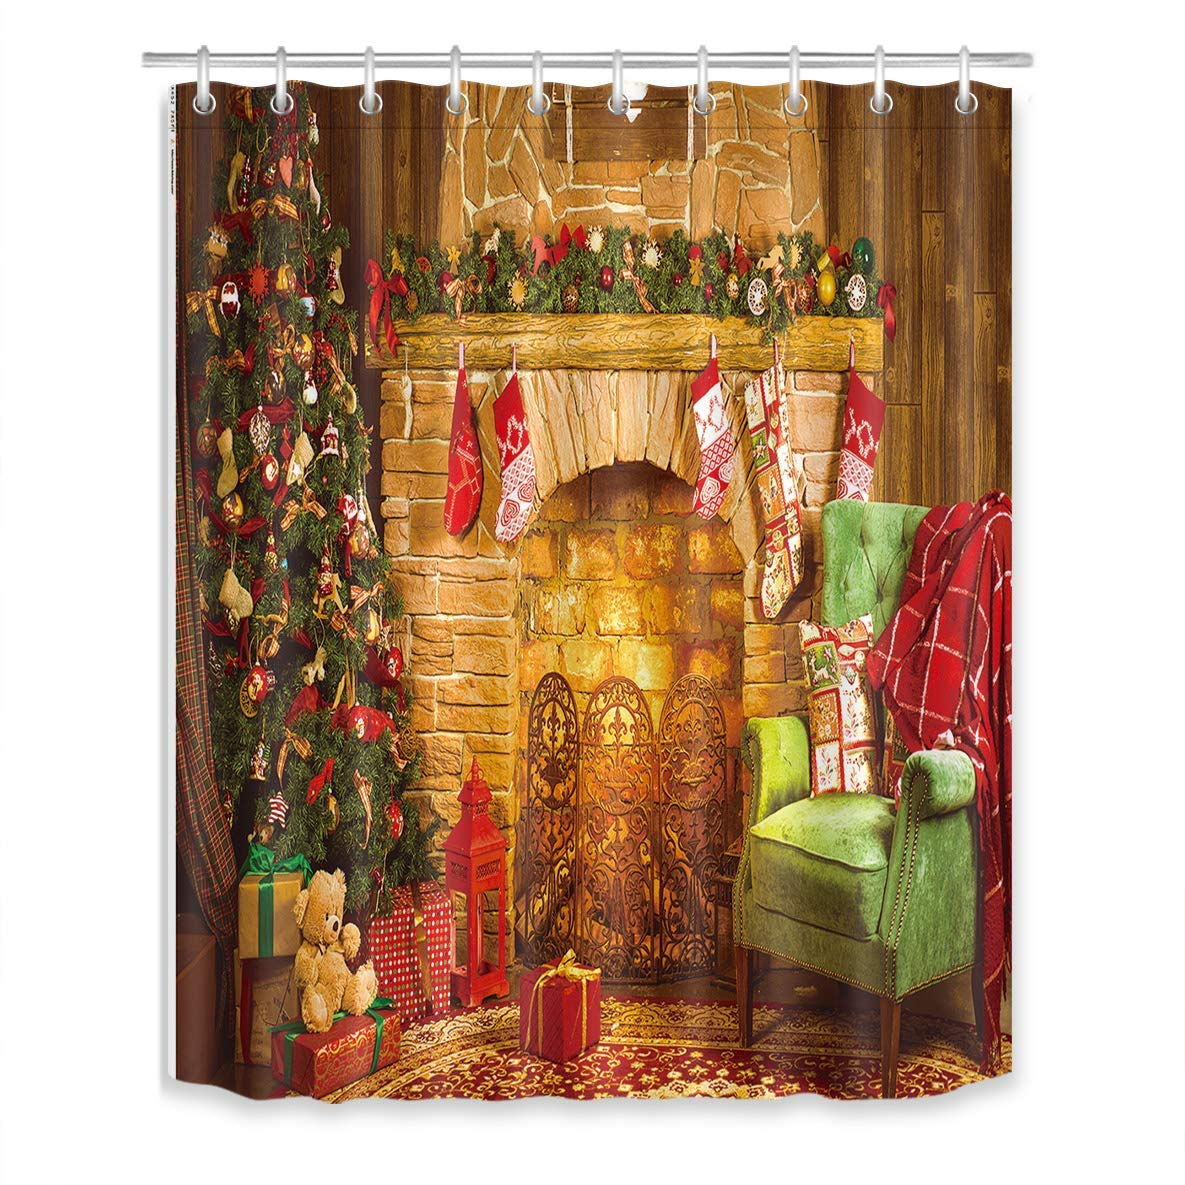 Us 18 28 Christmas Tree Gift Fireplace Shower Curtain Bathroom Curtain With Hooks Polyester Fabric Bathtub Curtain Mildew Resistant In Shower